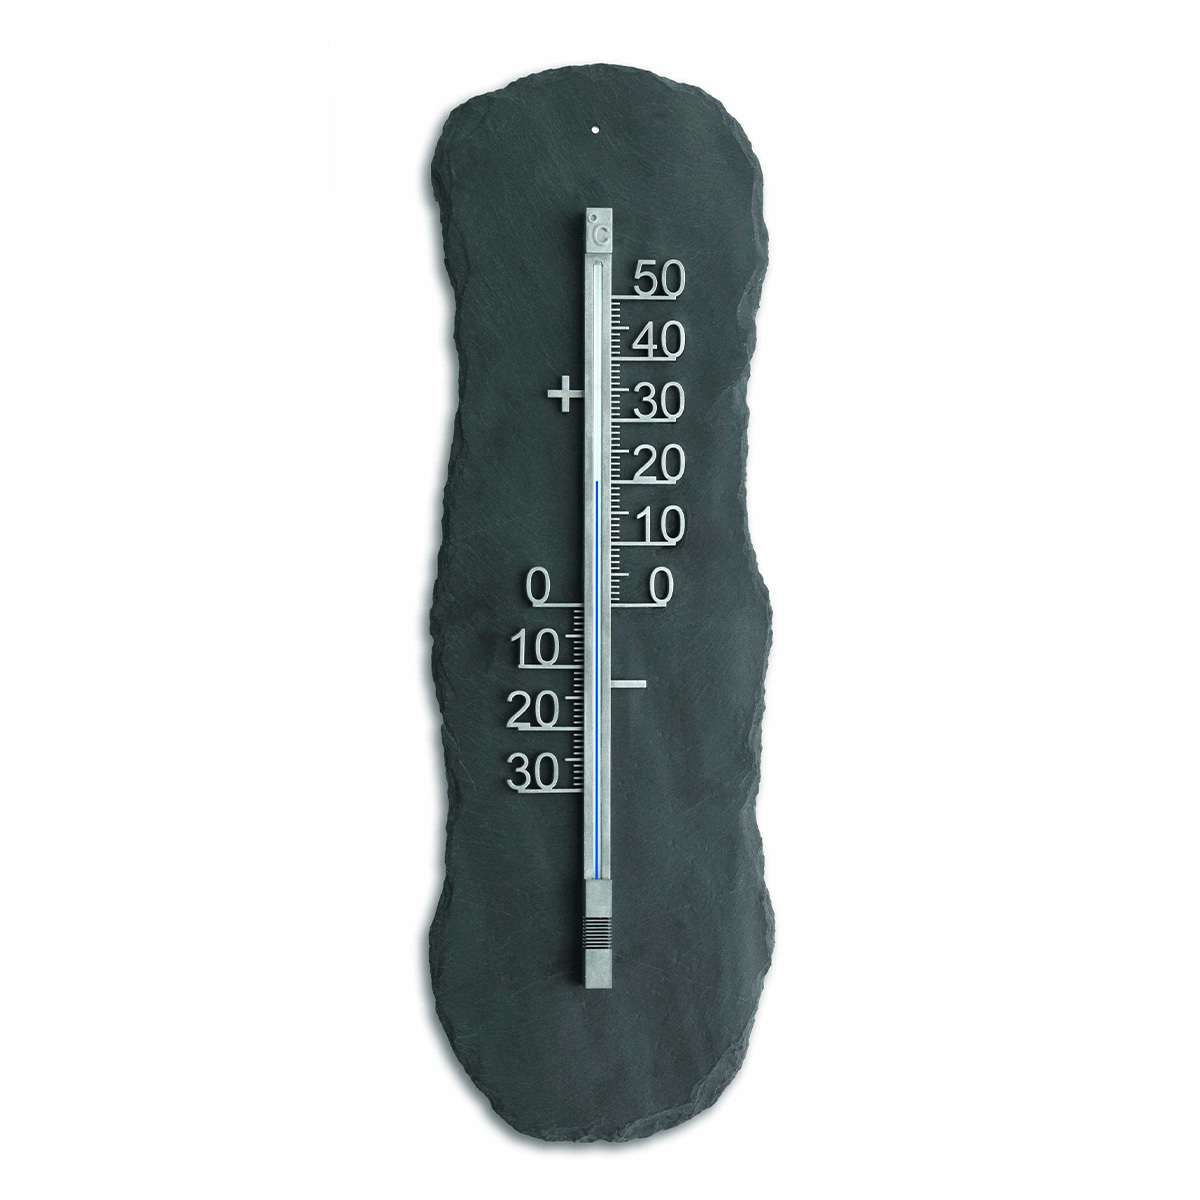 12-5012-analoges-aussenthermometer-schiefer-1200x1200px.jpg